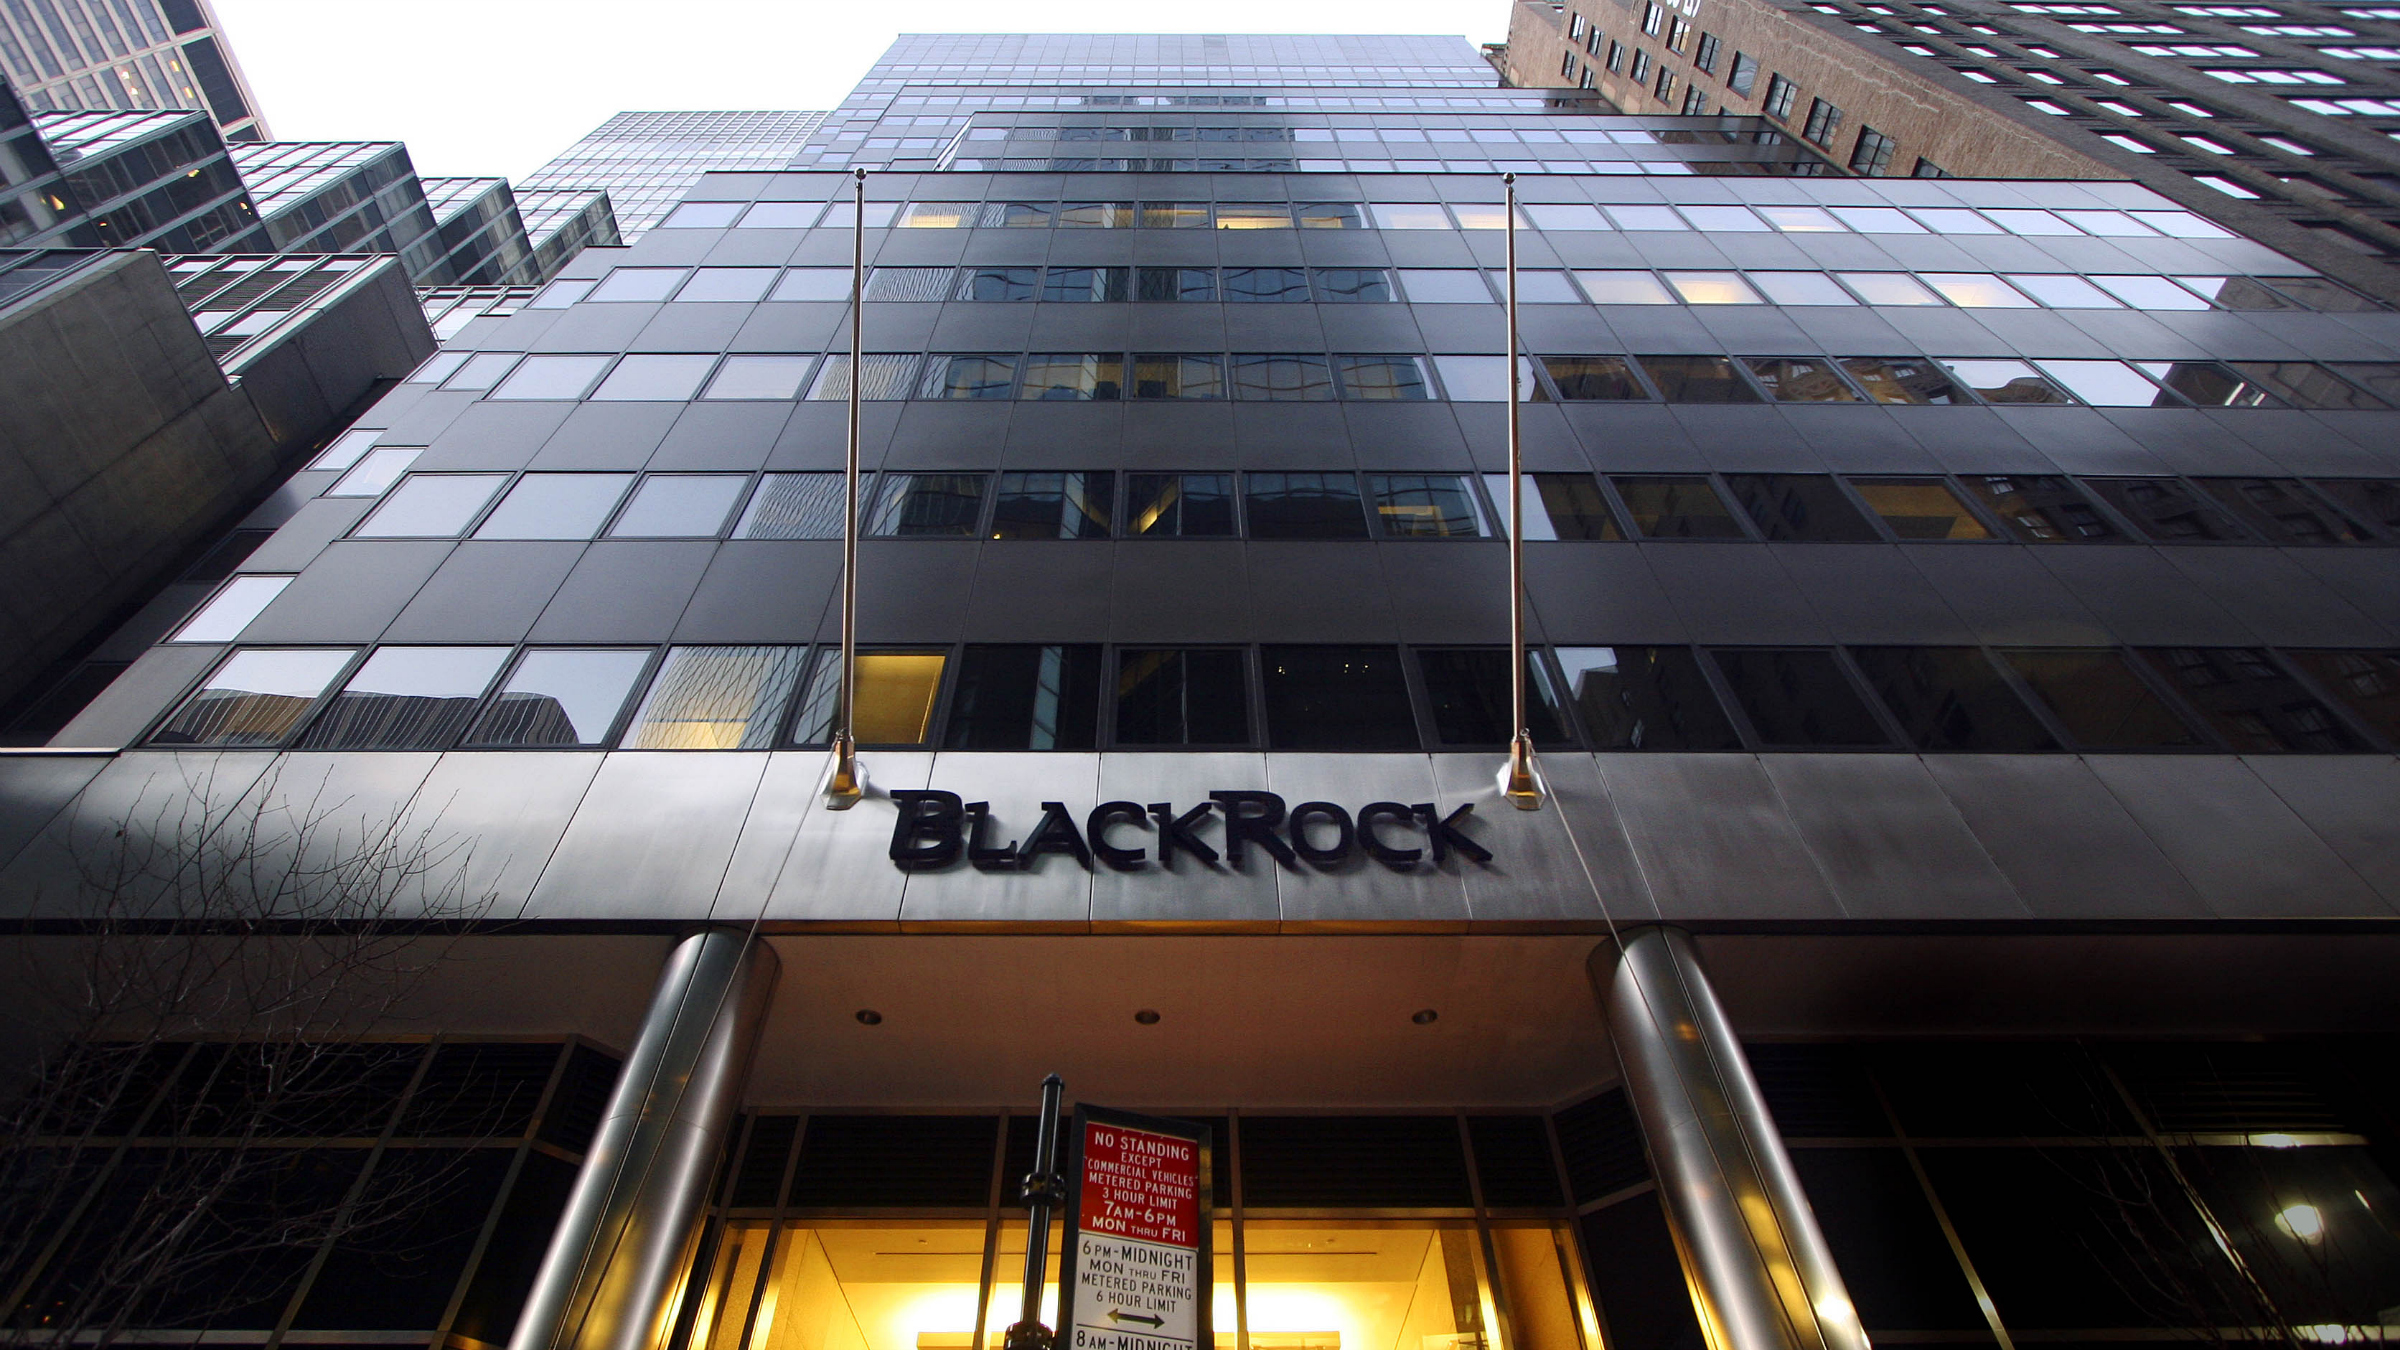 BlackRock Quarterly Earnings Are In